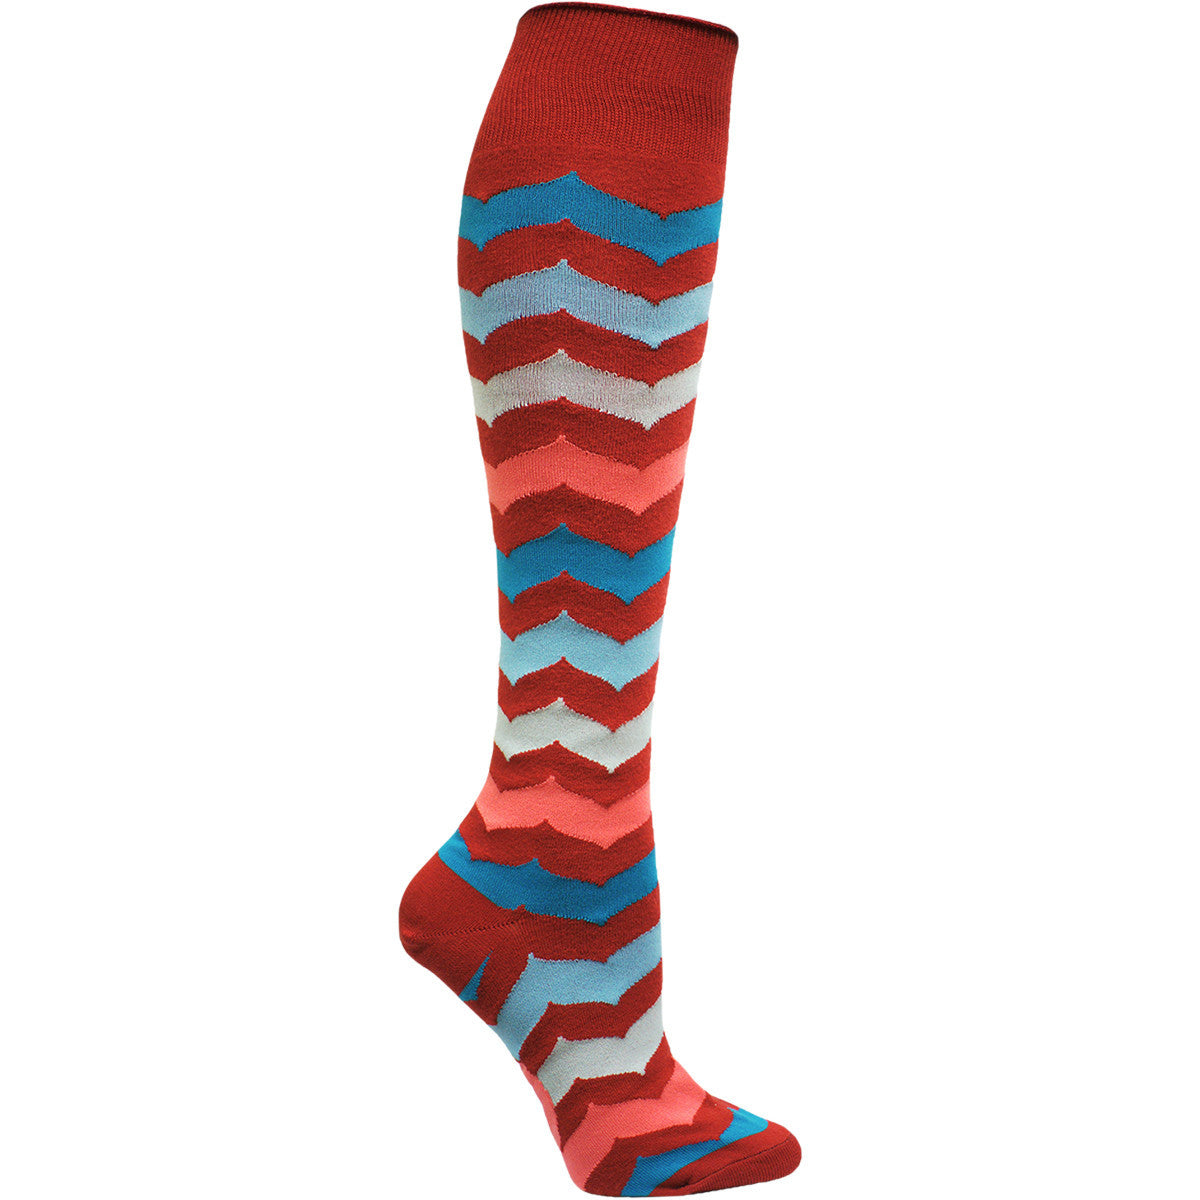 Women's Curved Chevron Knee High